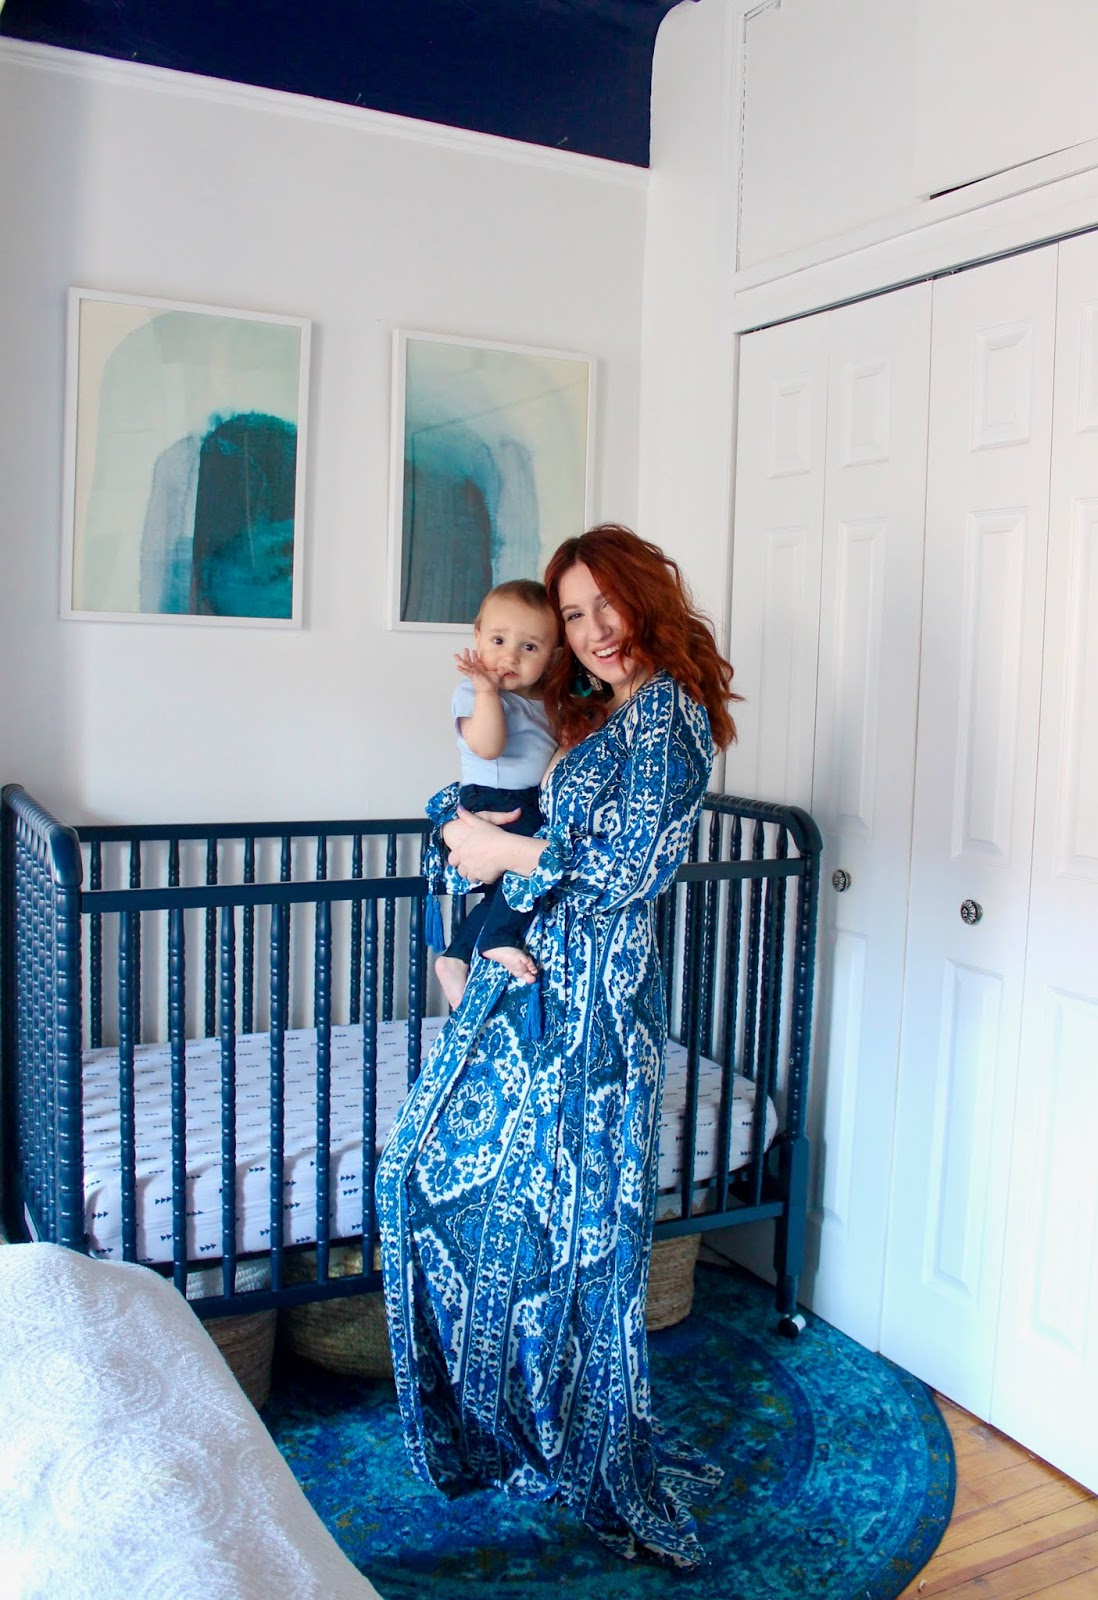 decorating with Pantone's Classic Blue, classic blue 2020 Pantone, how to decorate with Pantone's Color Of The Year Classic Blue, Blue Walls, Blue Decor, Bohemian Blue Decor, Blue Rugs, Blue Planter, Blue Accent Wall, Blue Kitchen Island, Blue Ceiling Painted, Two-Tone Ceiling, Blue Nursery, Blue Boys Room, Blue Kids Room, Blue Master Bedroom, Blue Ceiling, Classic Blue 2020 Decor, Classic Blue 2020 Pantone Home Decor, Blue Home Decor Ideas,